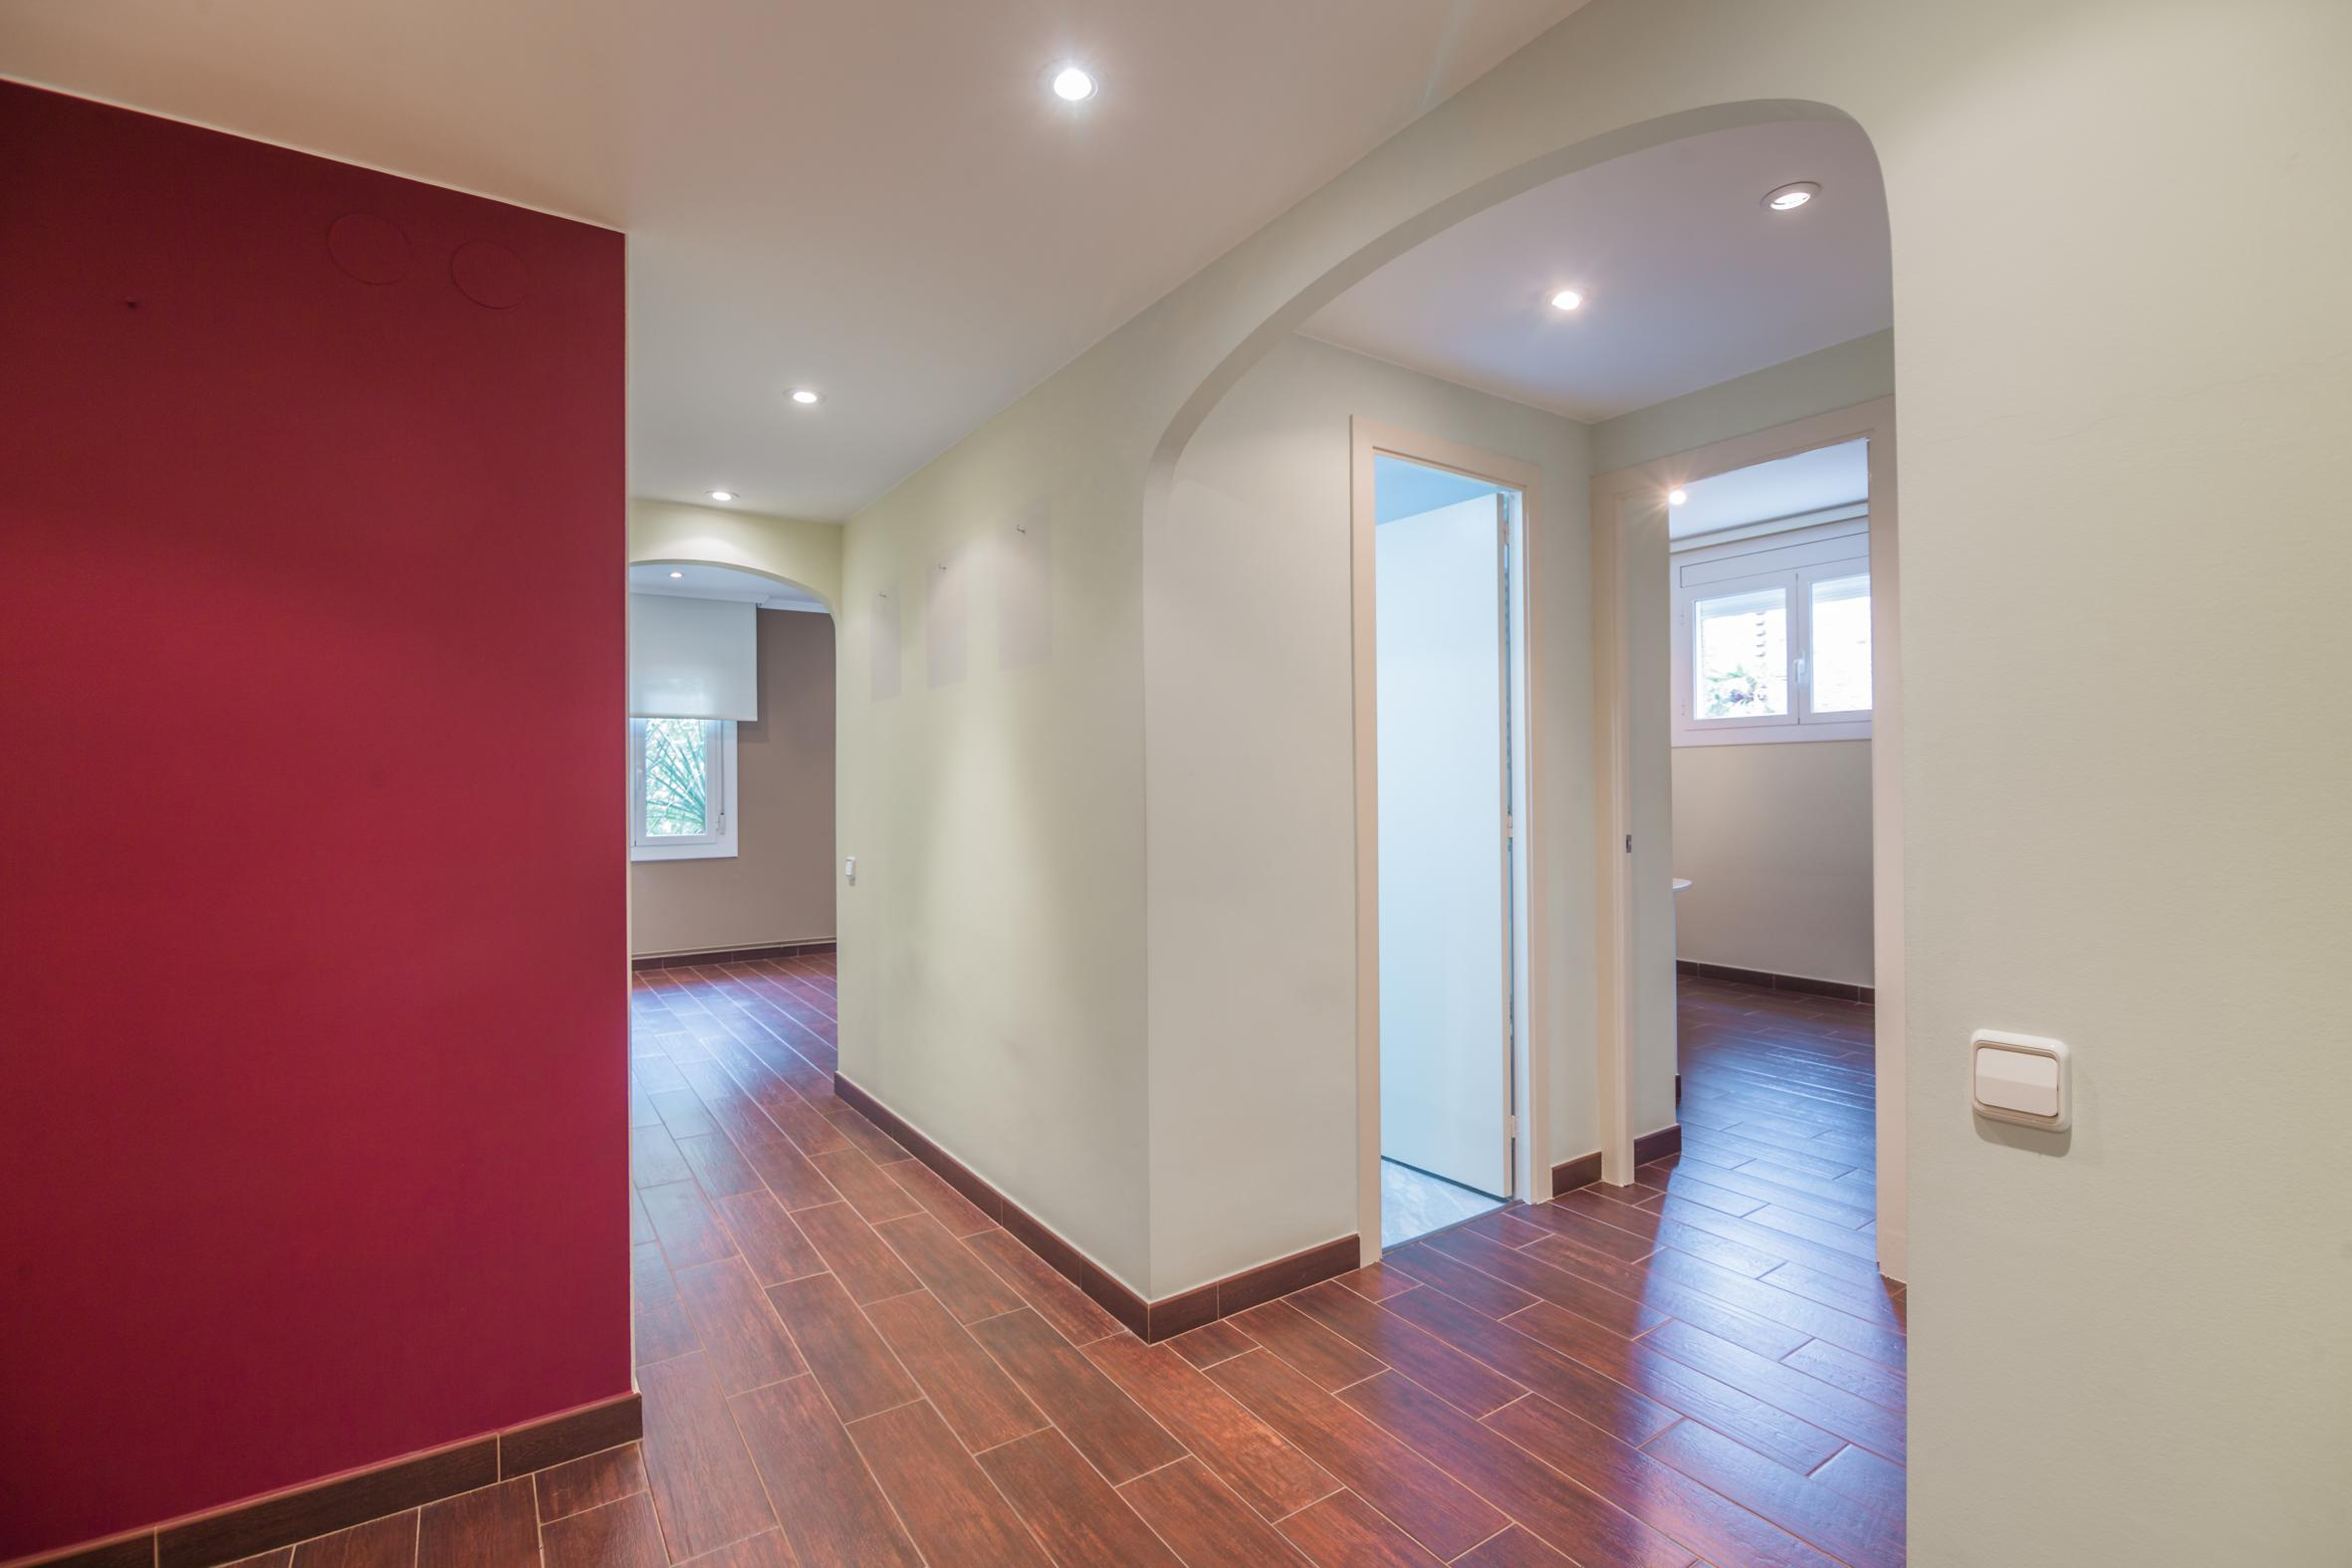 246902 Flat for sale in Les Corts, Pedralbes 3